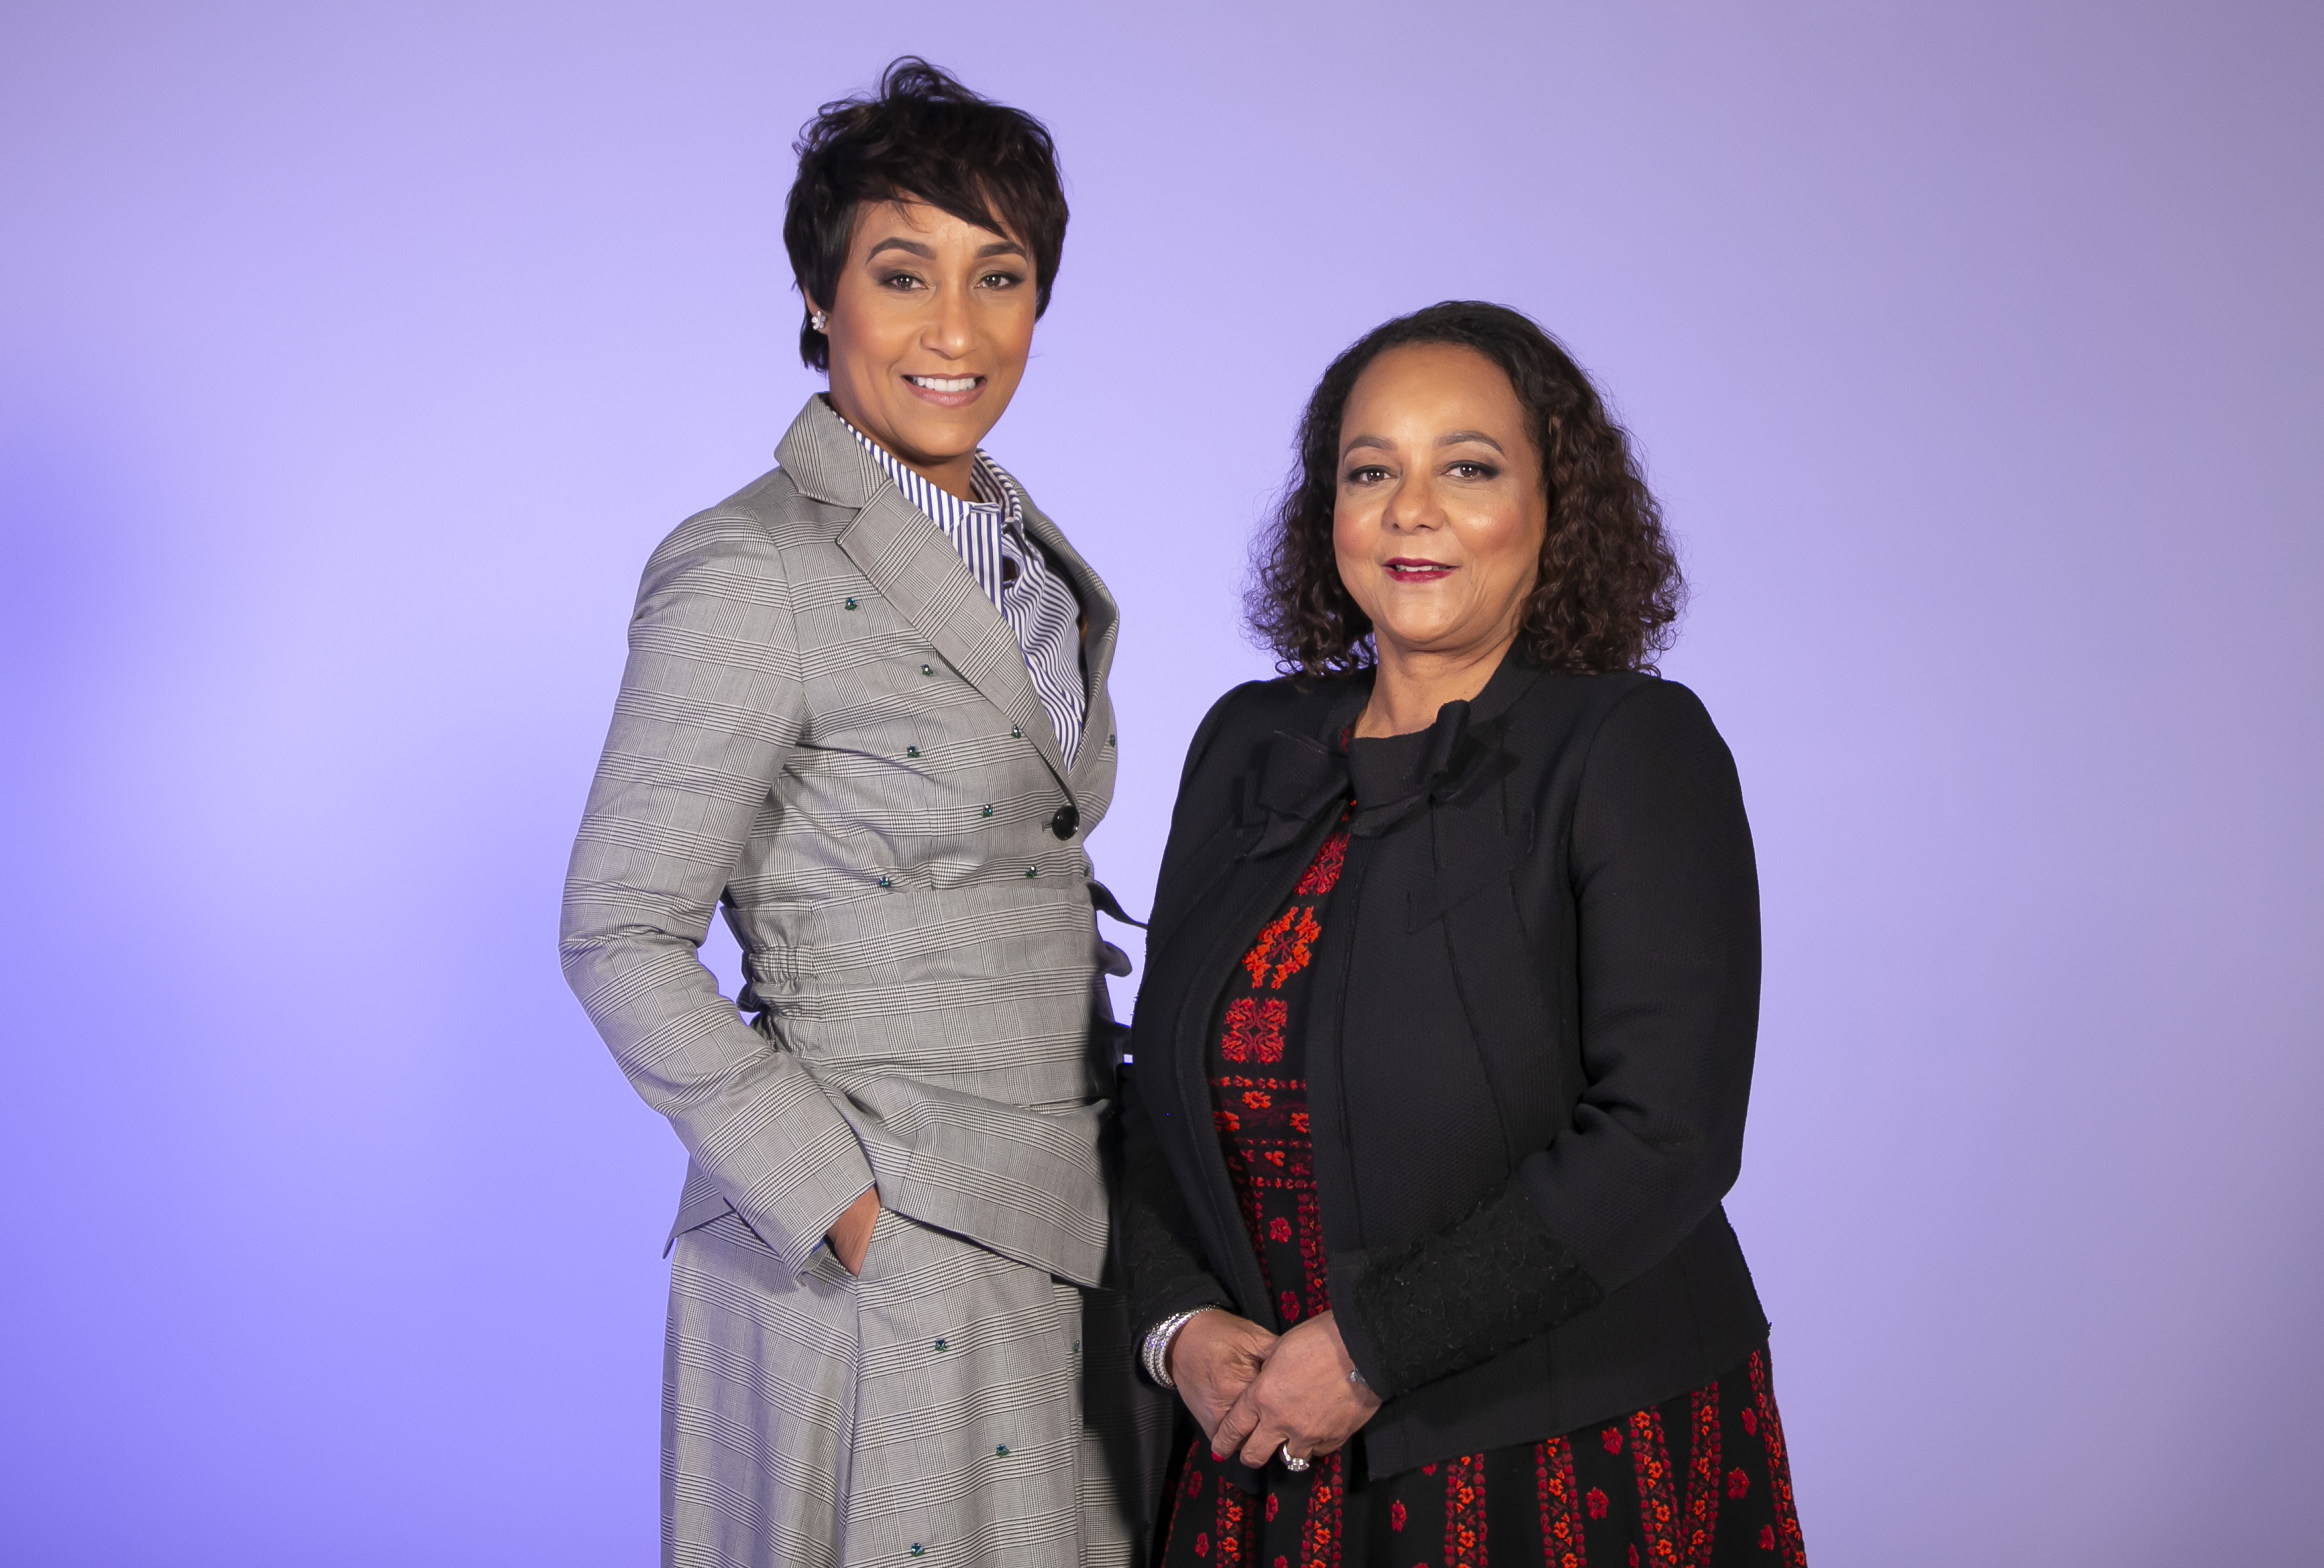 """Desiree Rogers and Cheryl Mayberry McKissack say they're receiving overwhelming support for their new business venture. """"They want us to be successful. There are a lot of people that are rooting for us,"""" said McKissack."""